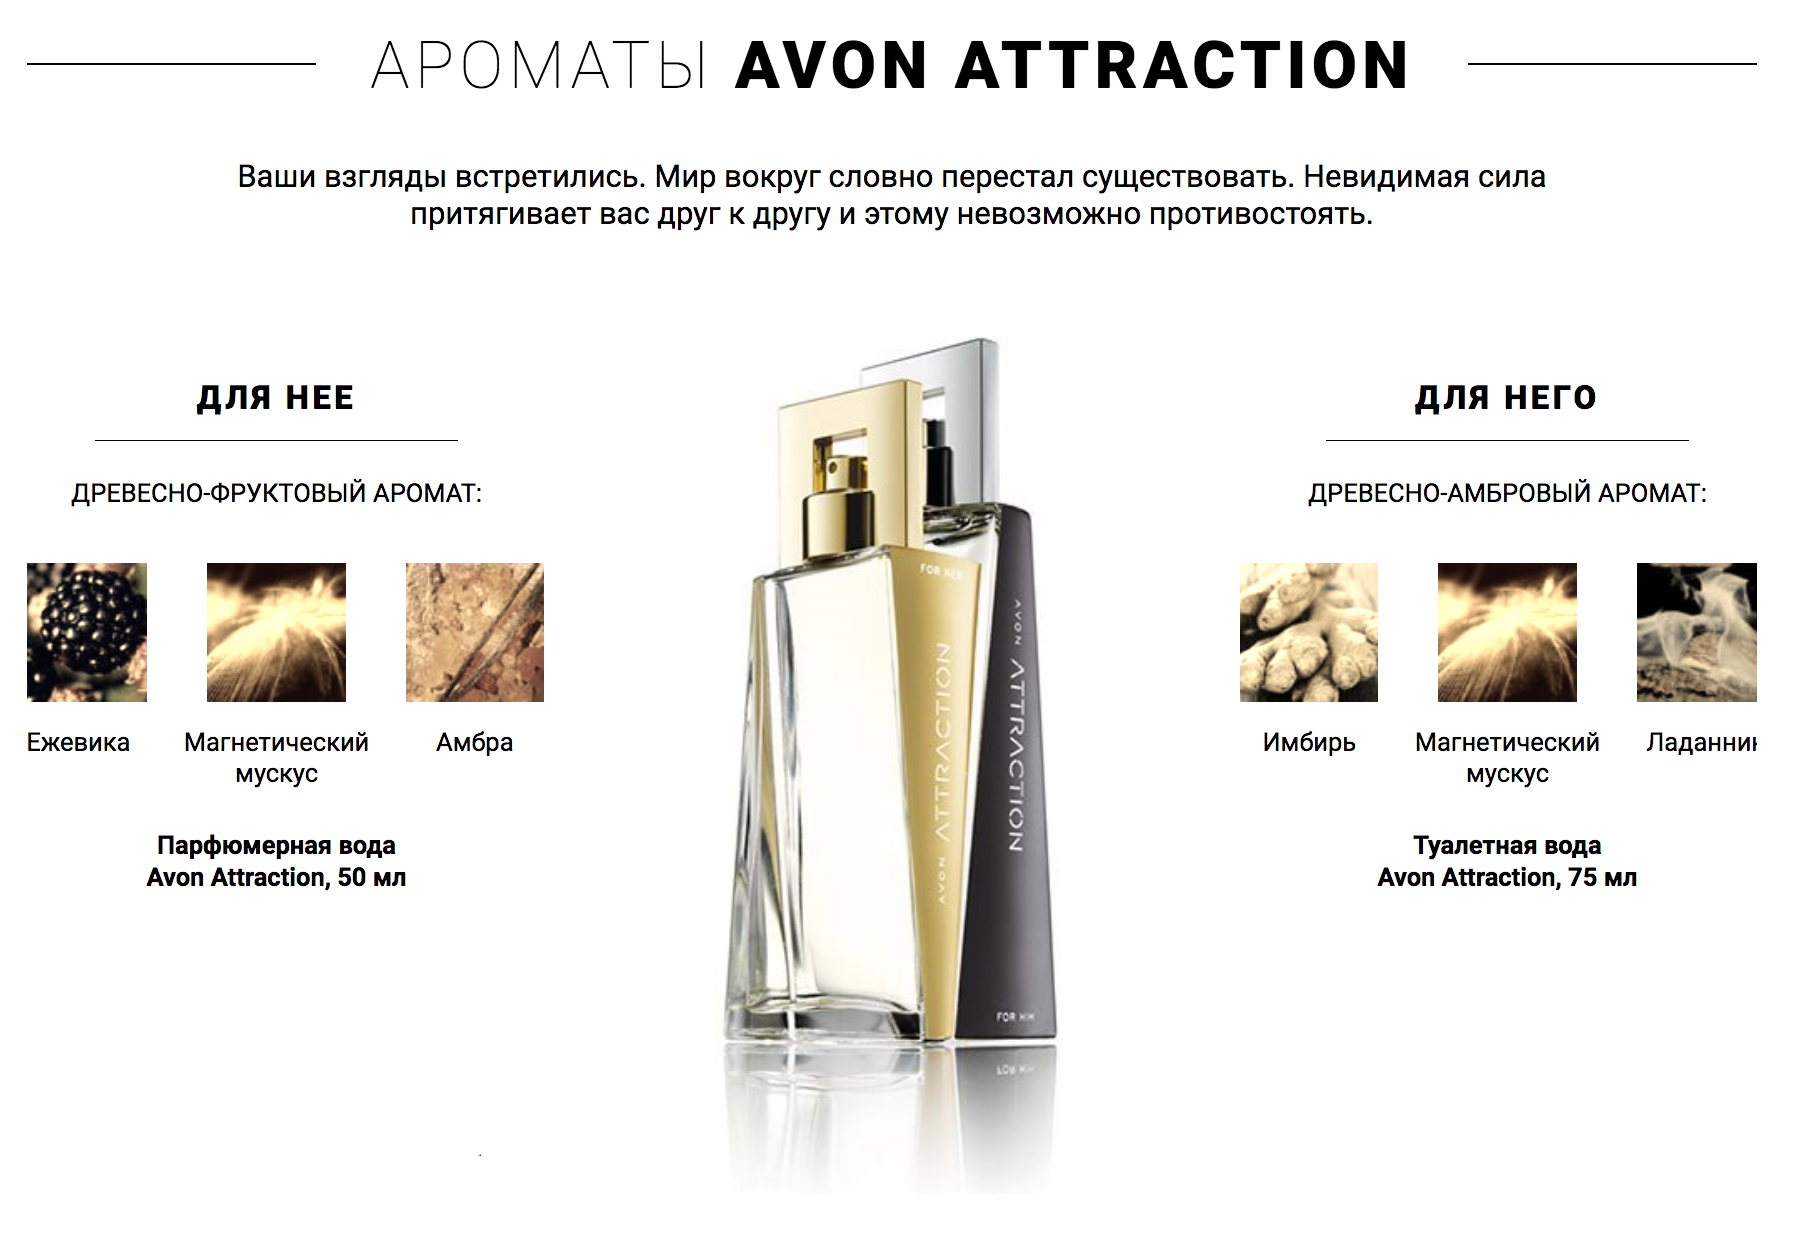 Avon Attraction аромат